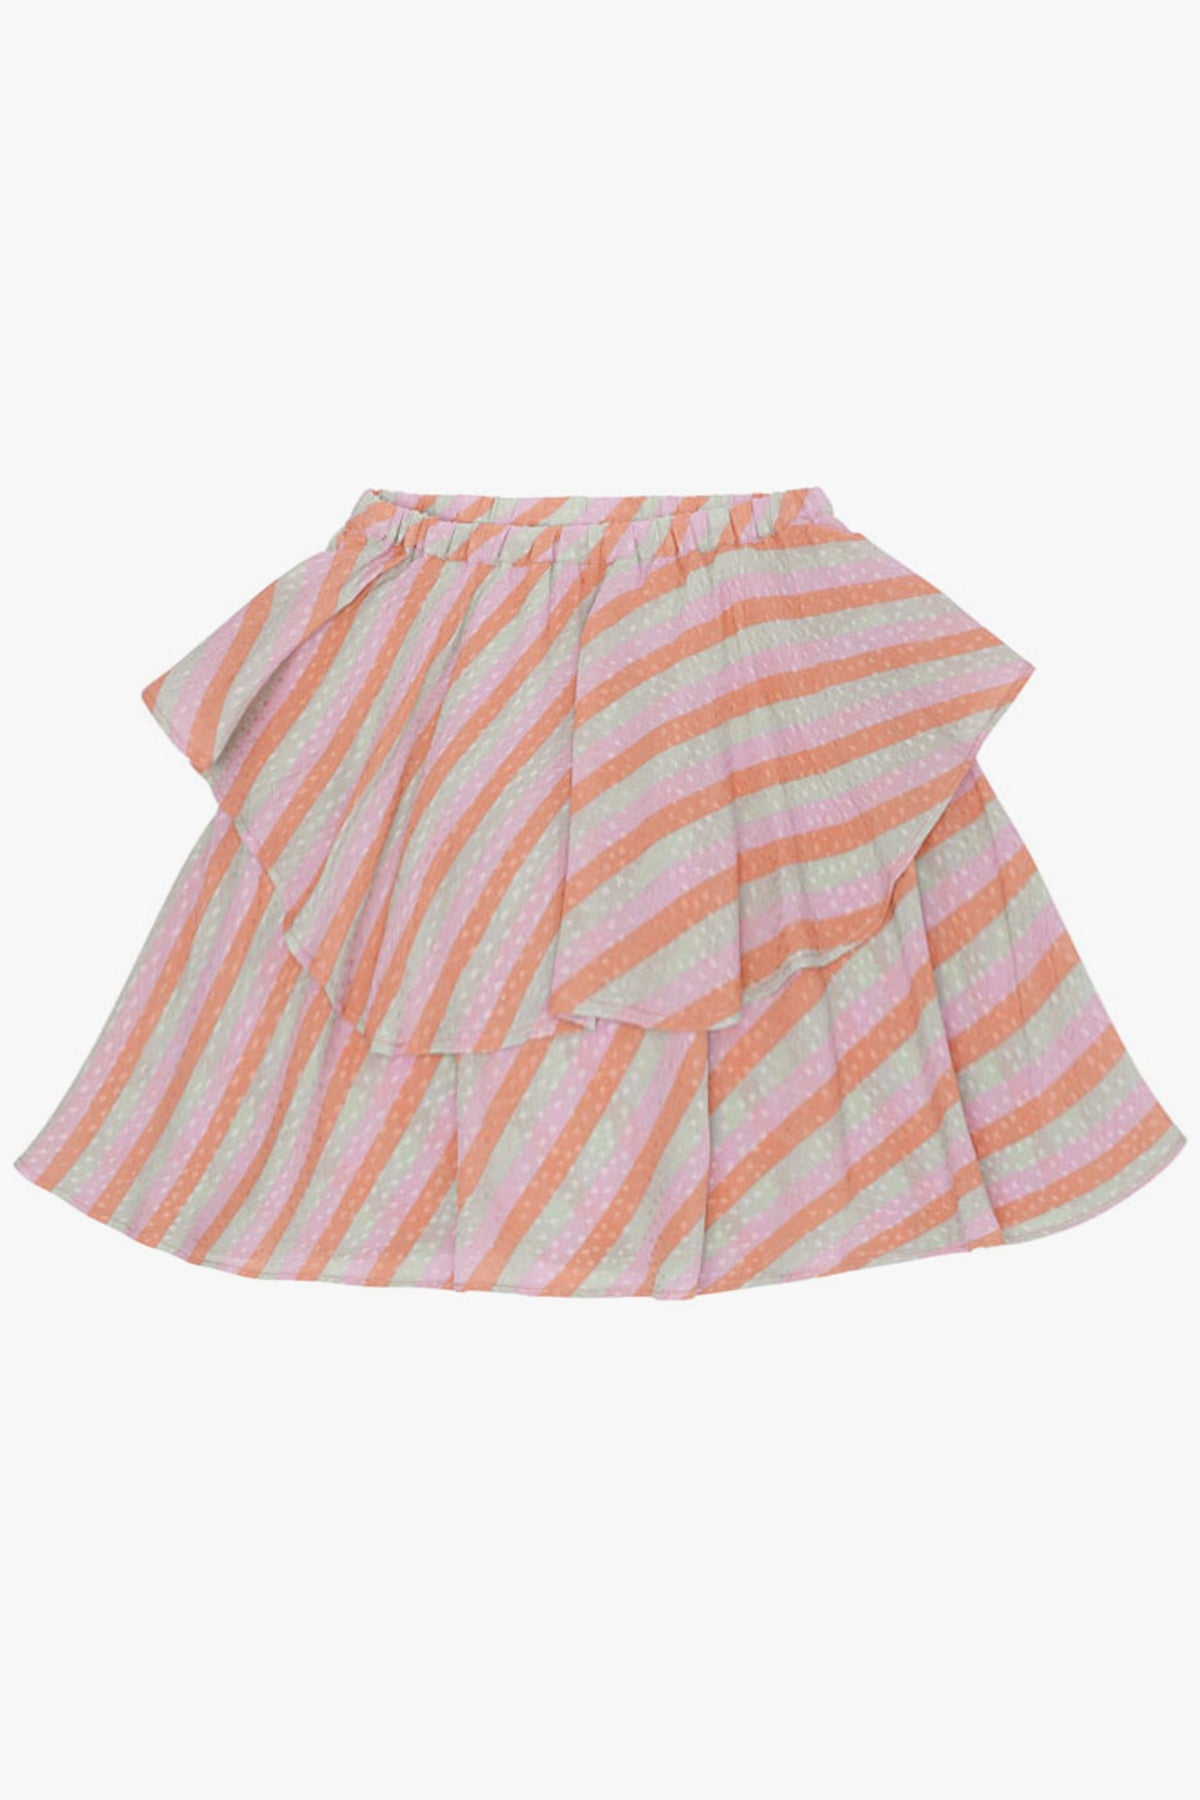 Soft Gallery Heather Dewkist Girls Skirt